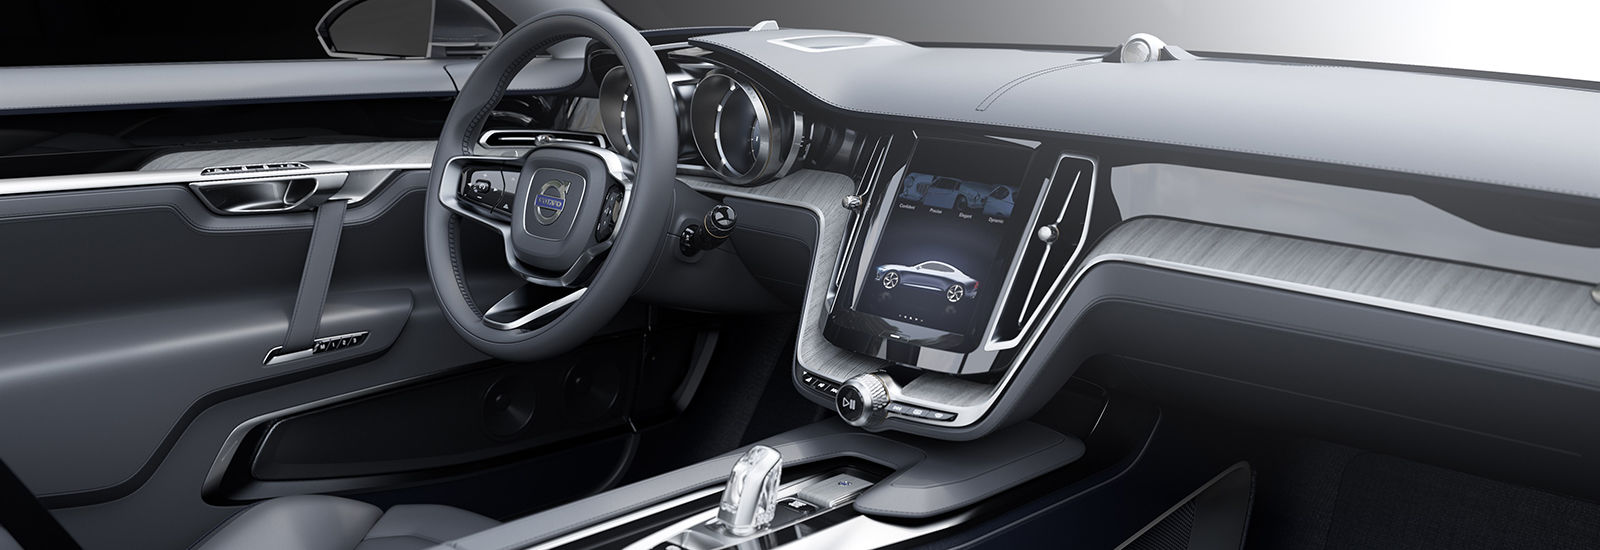 Volvo C90 Coupe >> Volvo S90 Coupe (C90) price specs release date   carwow